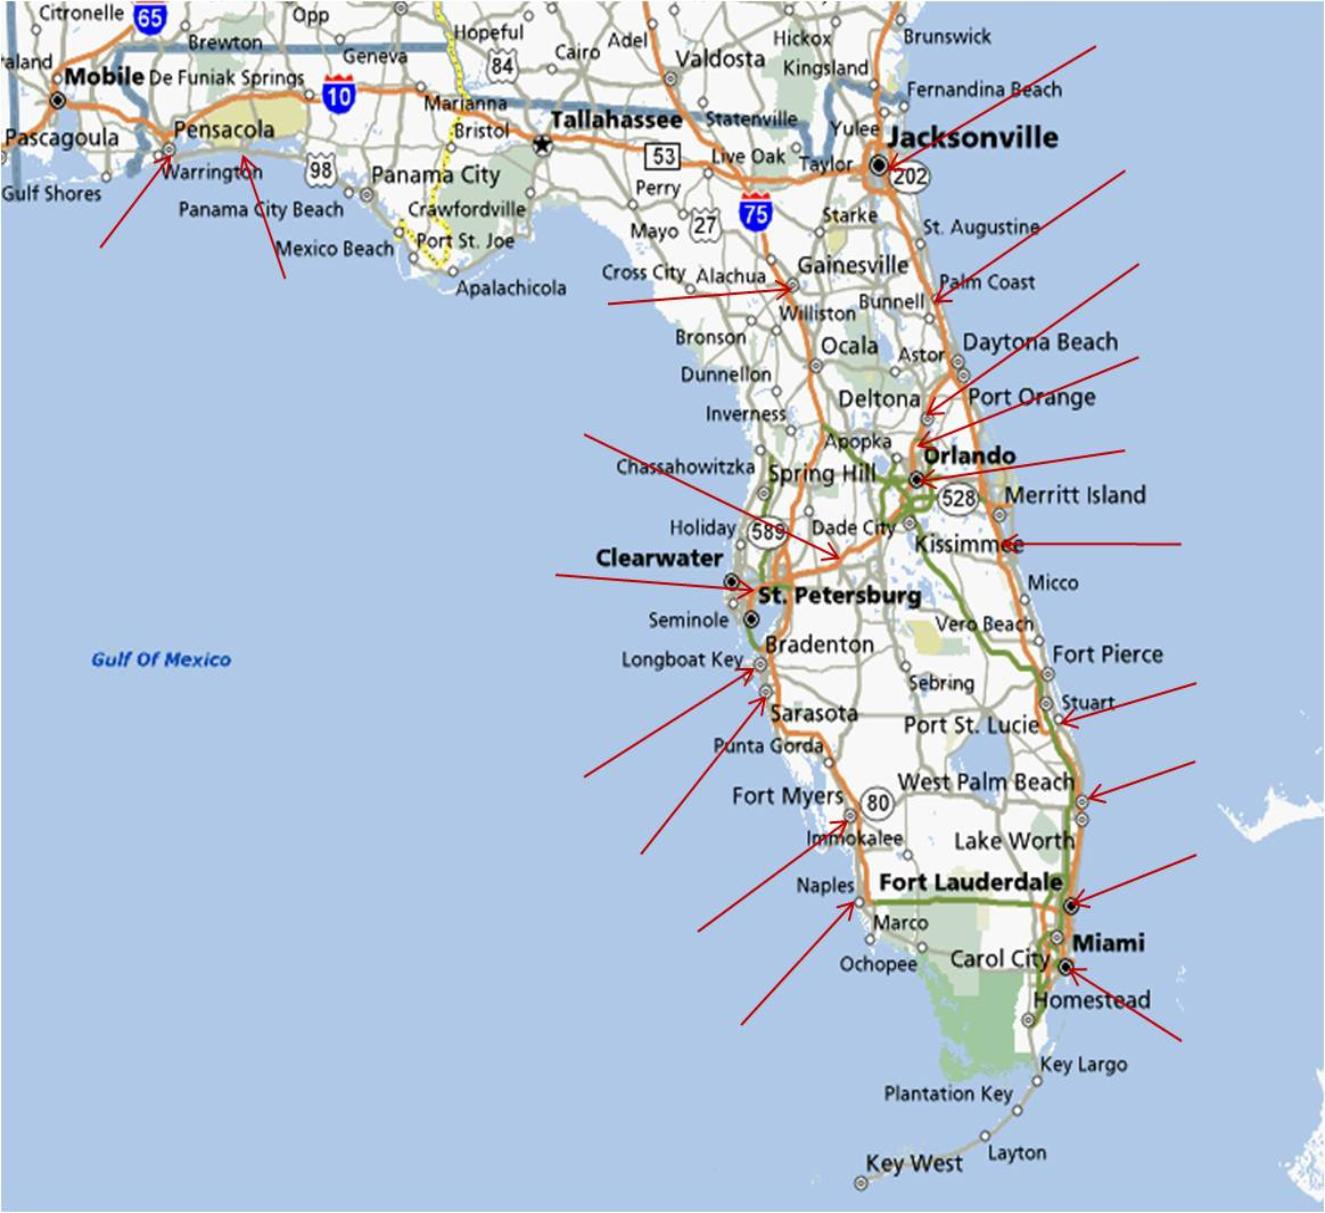 South Florida Mapcity And Travel Information Download Free New - Map Of Panama City Florida And Surrounding Towns